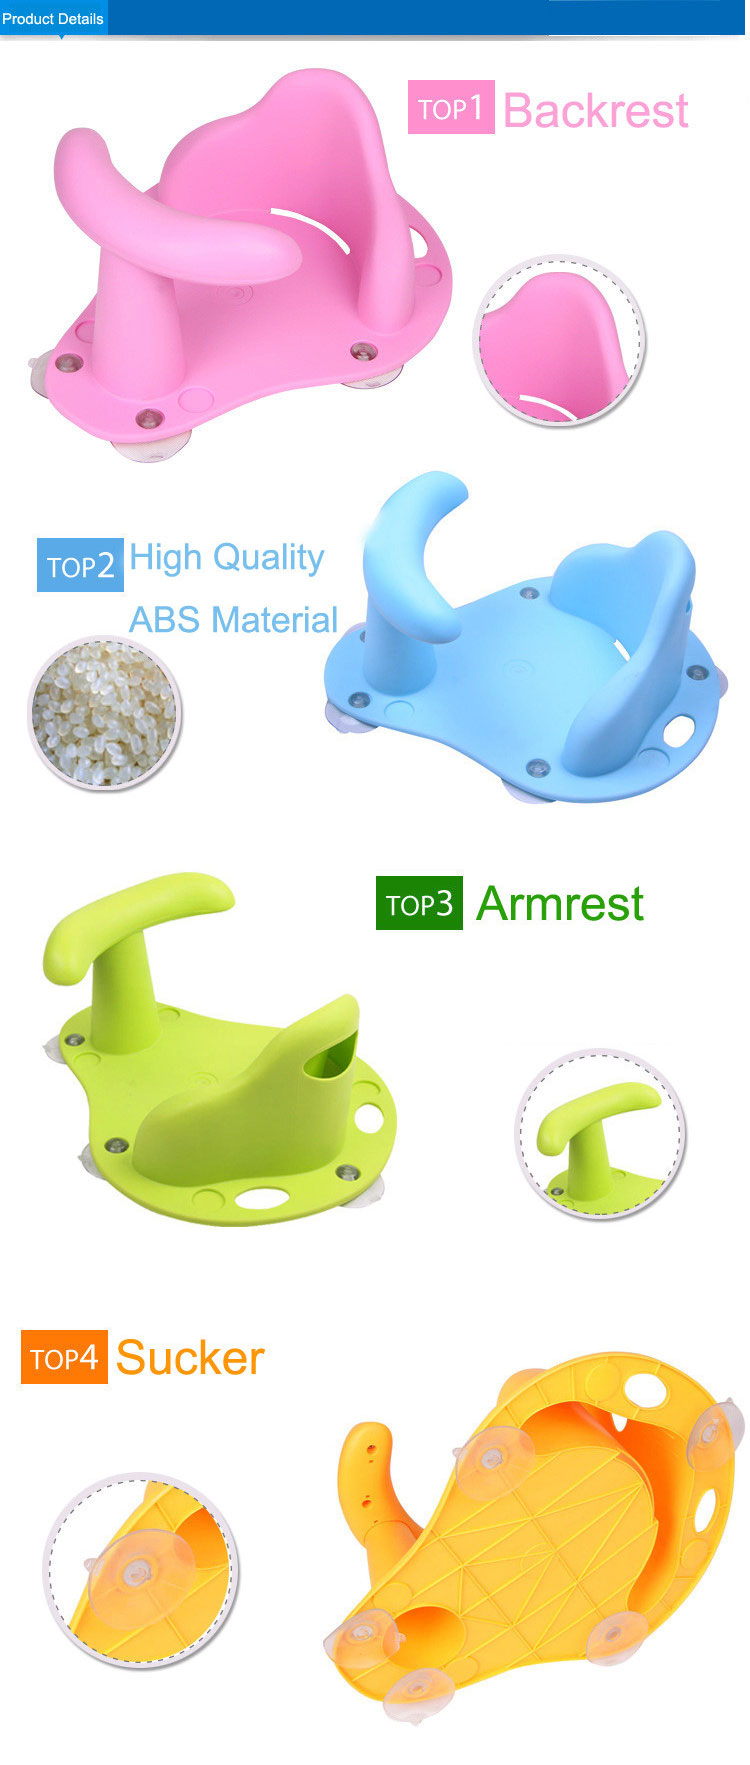 Baby Bath Tub Ring and Baby Bathtub Seat Made with Rubber and ABS Material for Infant Safety 6